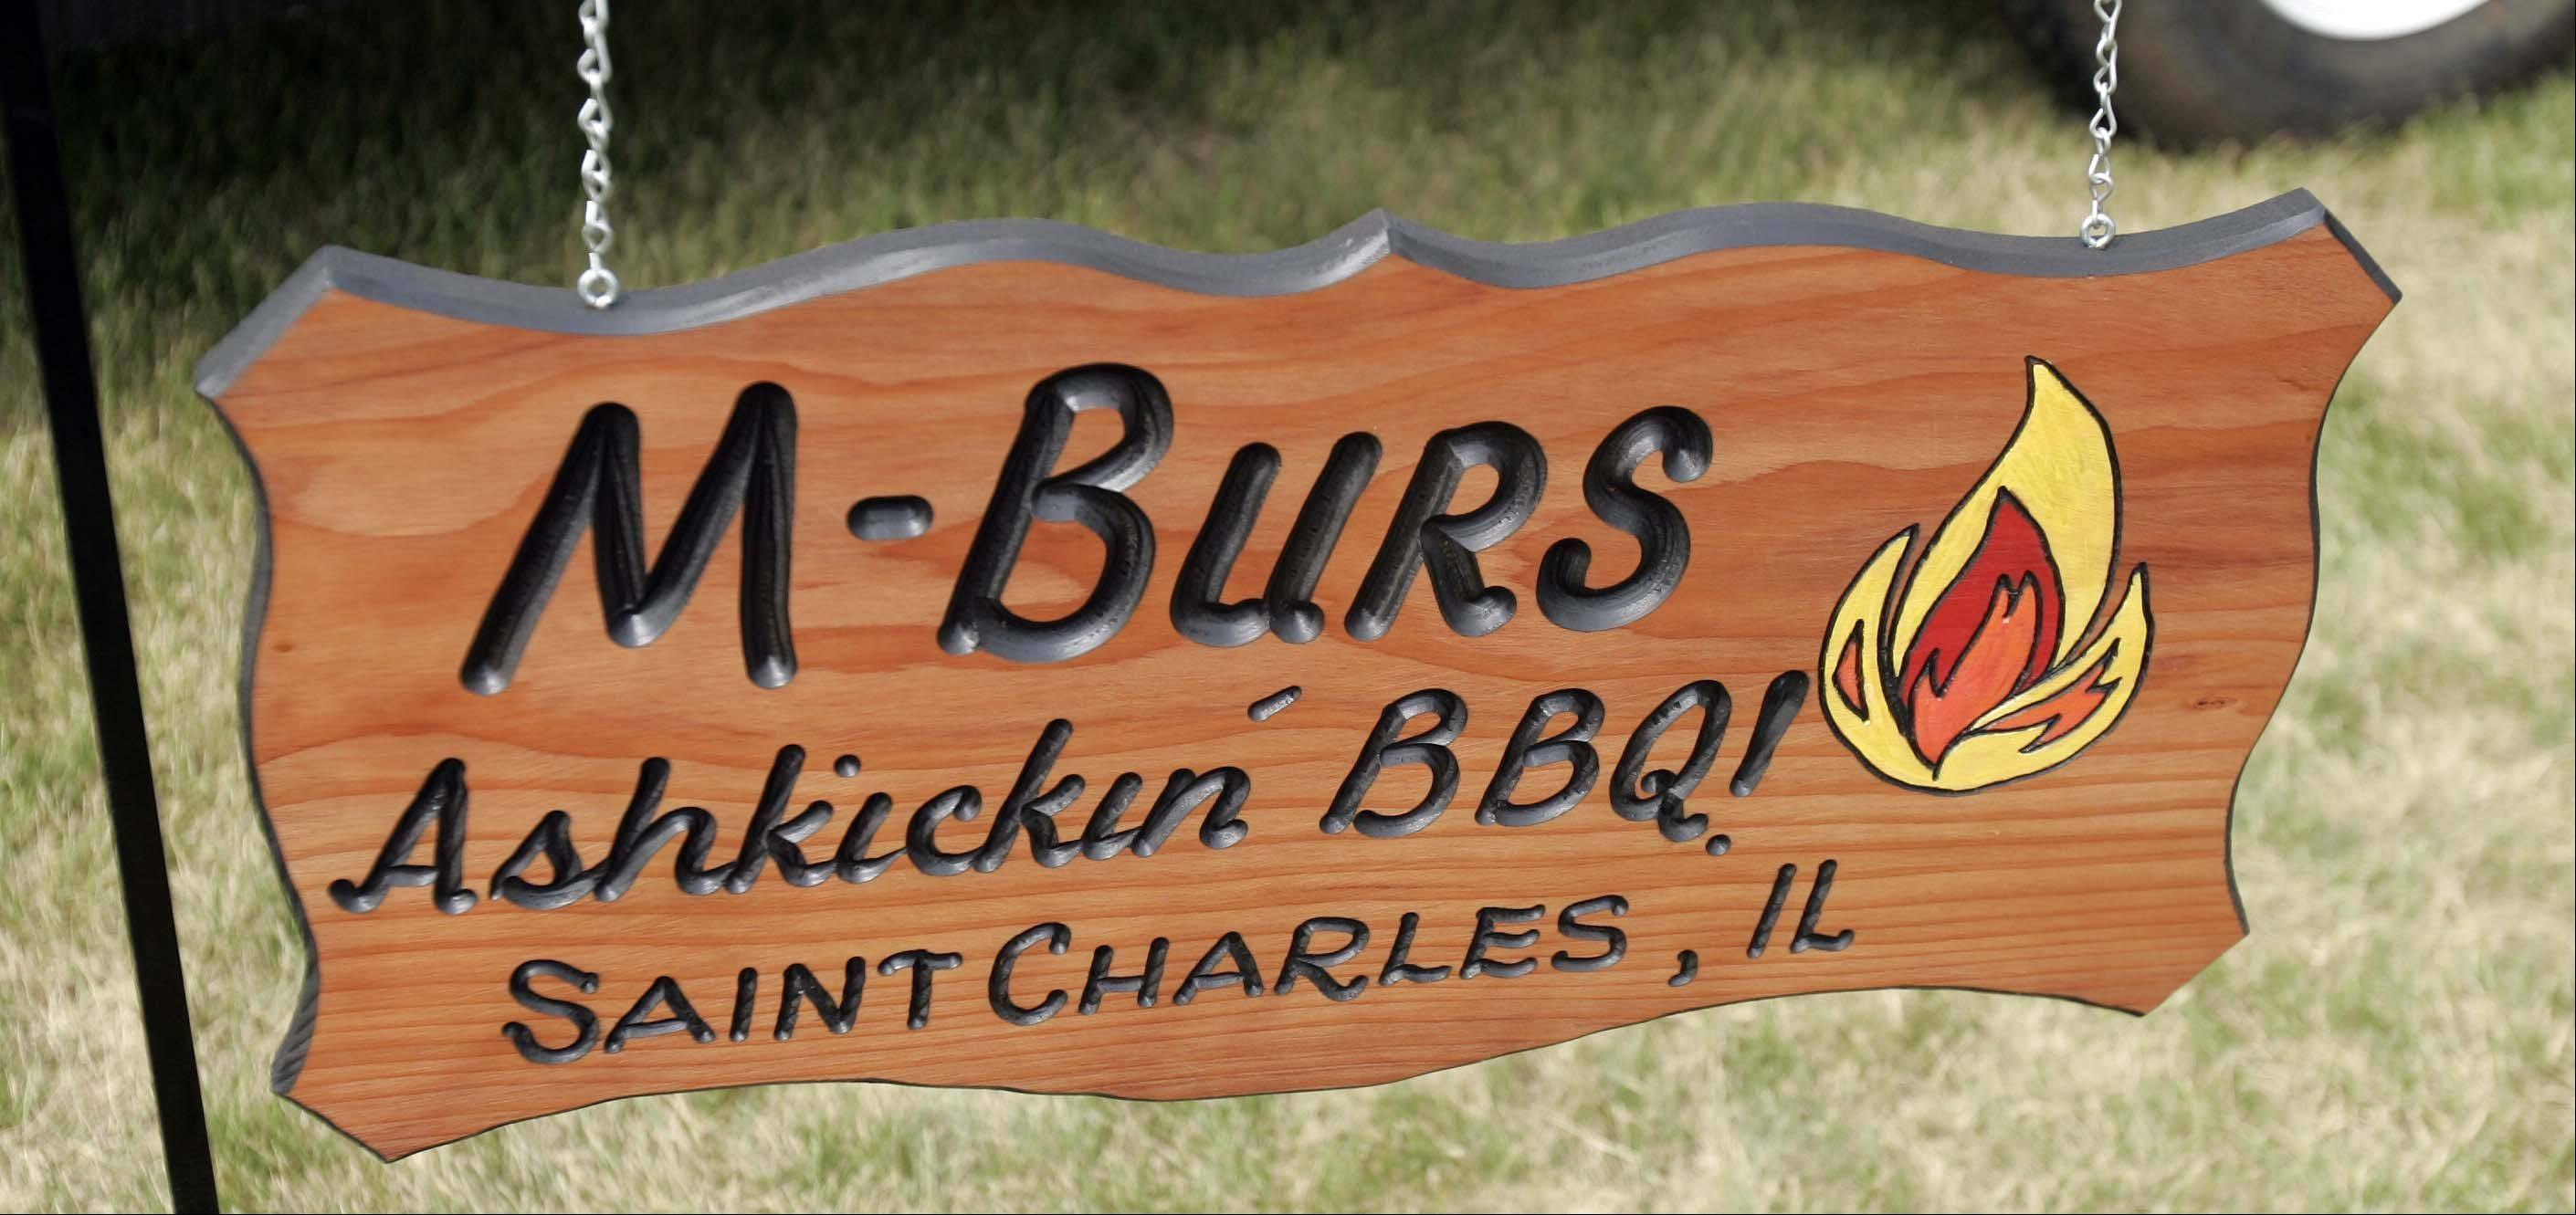 The MBurs sign hangs in front of Matt and Marty Burton's custom barbecue trailer.